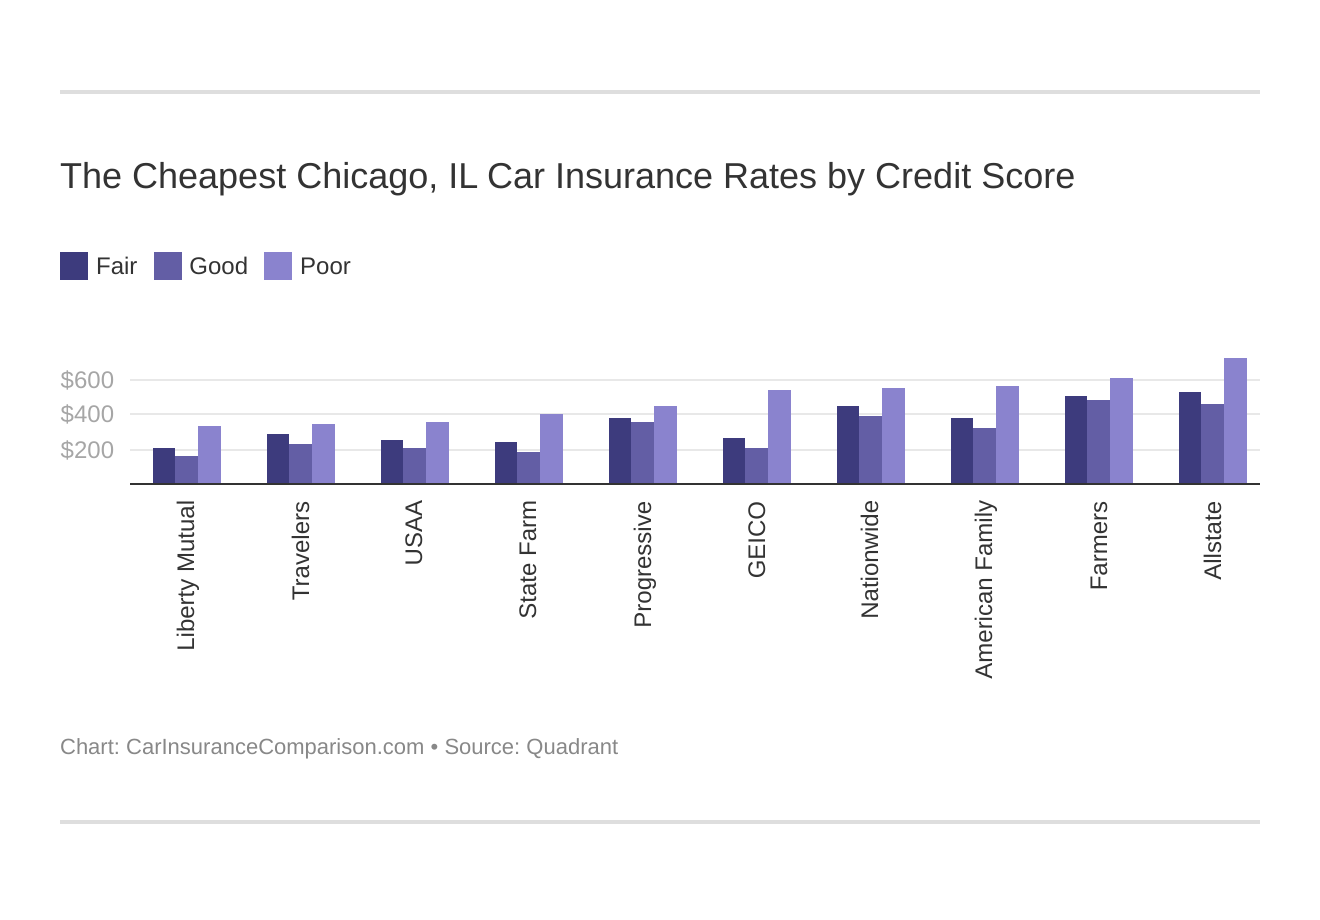 The Cheapest Chicago, IL Car Insurance Rates by Credit Score